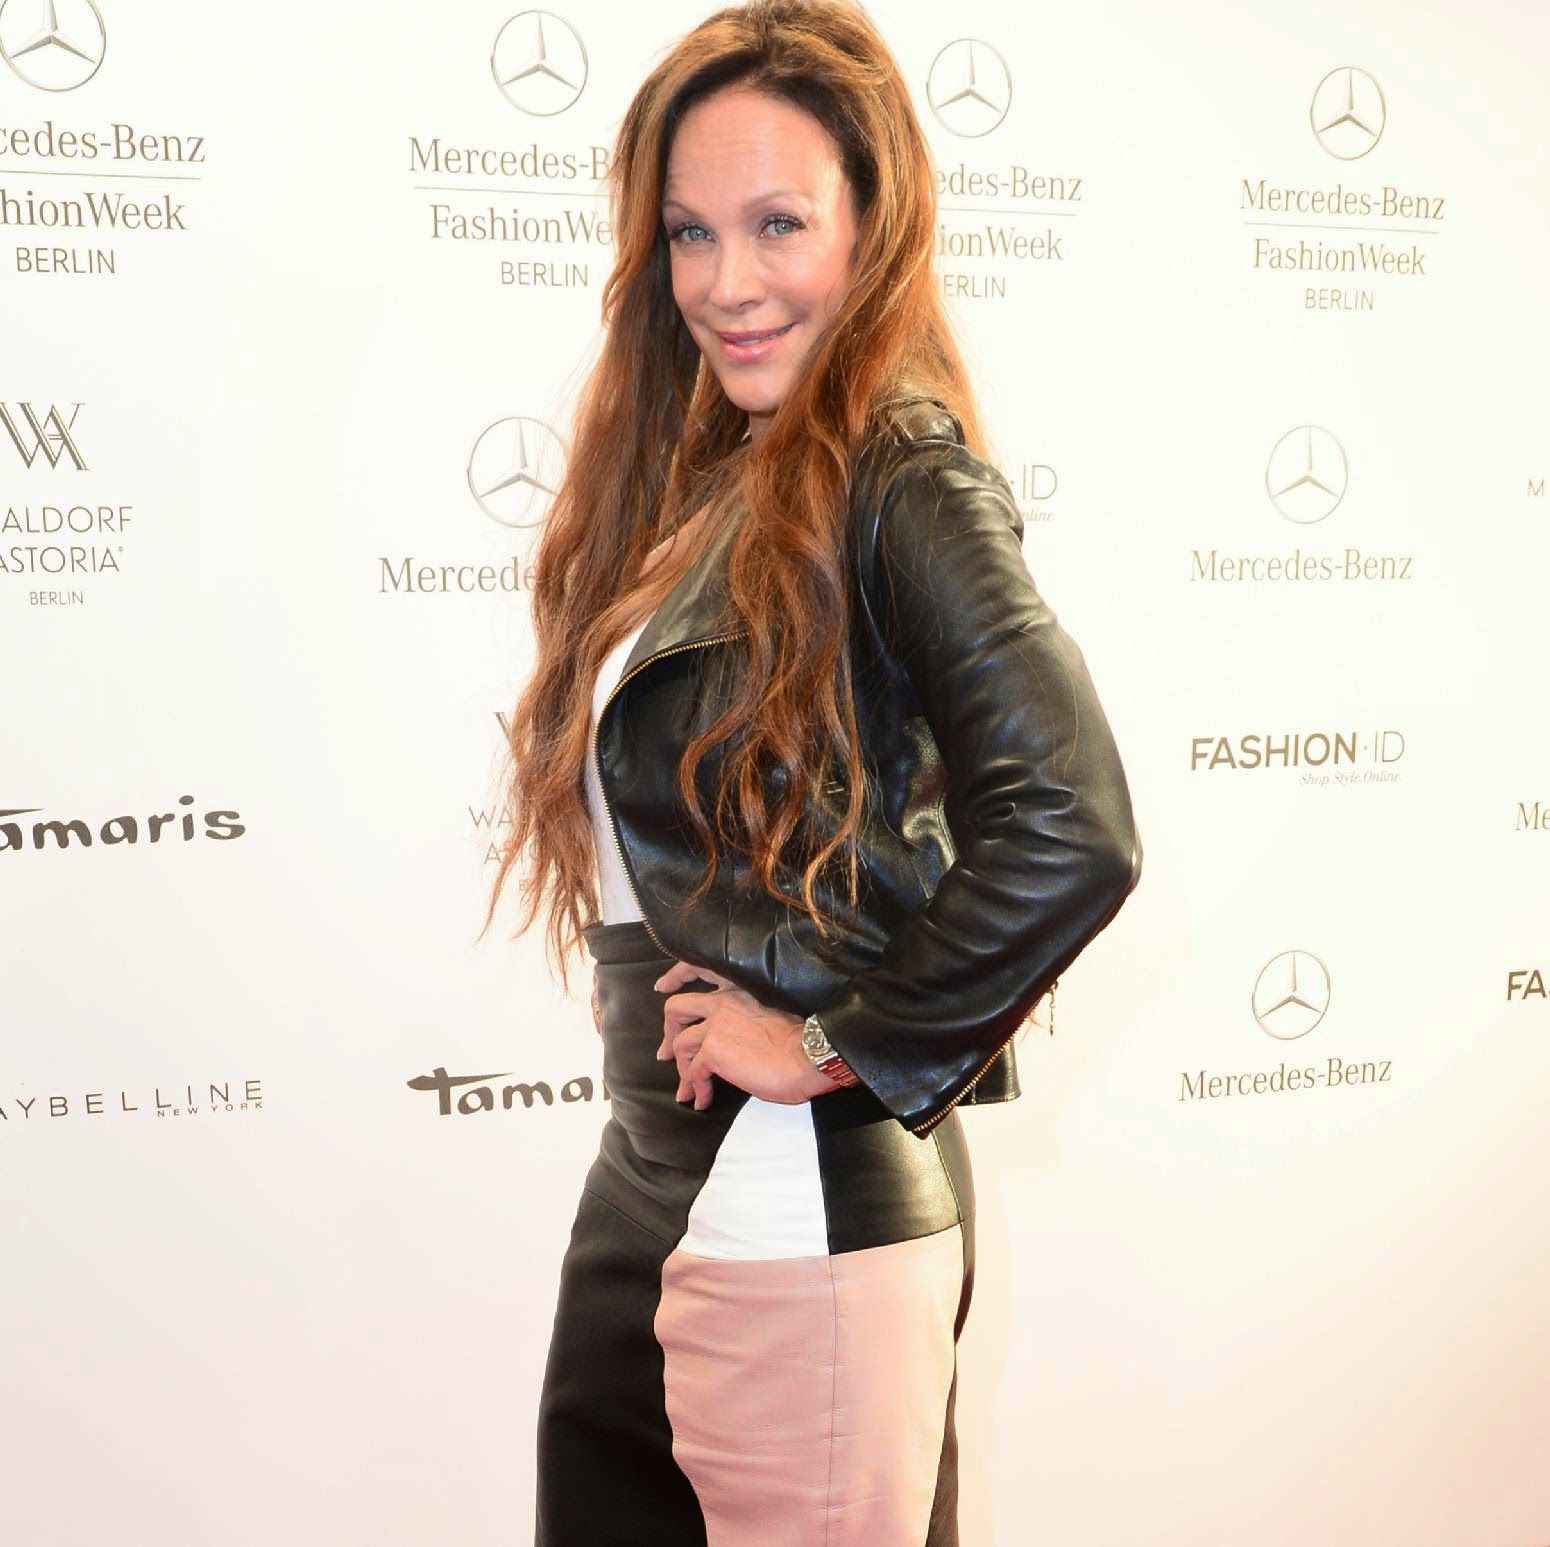 Celebrities In Leather: Sonja Kirchberger looks hot in leather skirt and j.